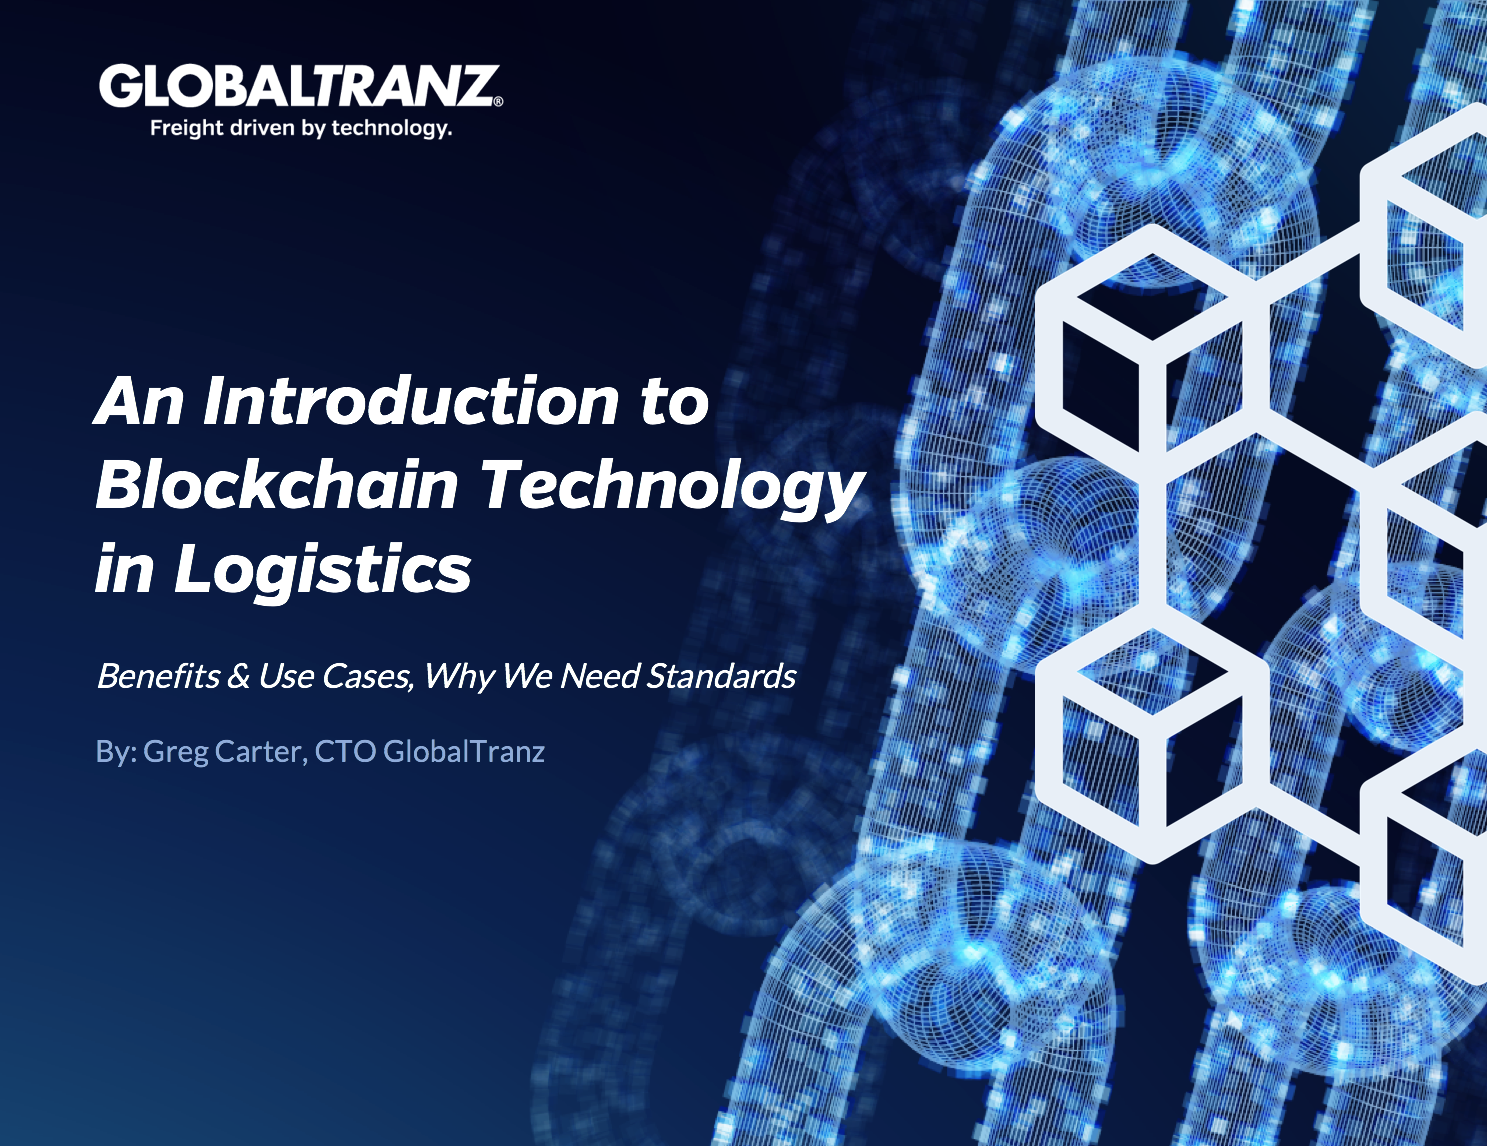 An Introduction to Blockchain Technology in Logistics